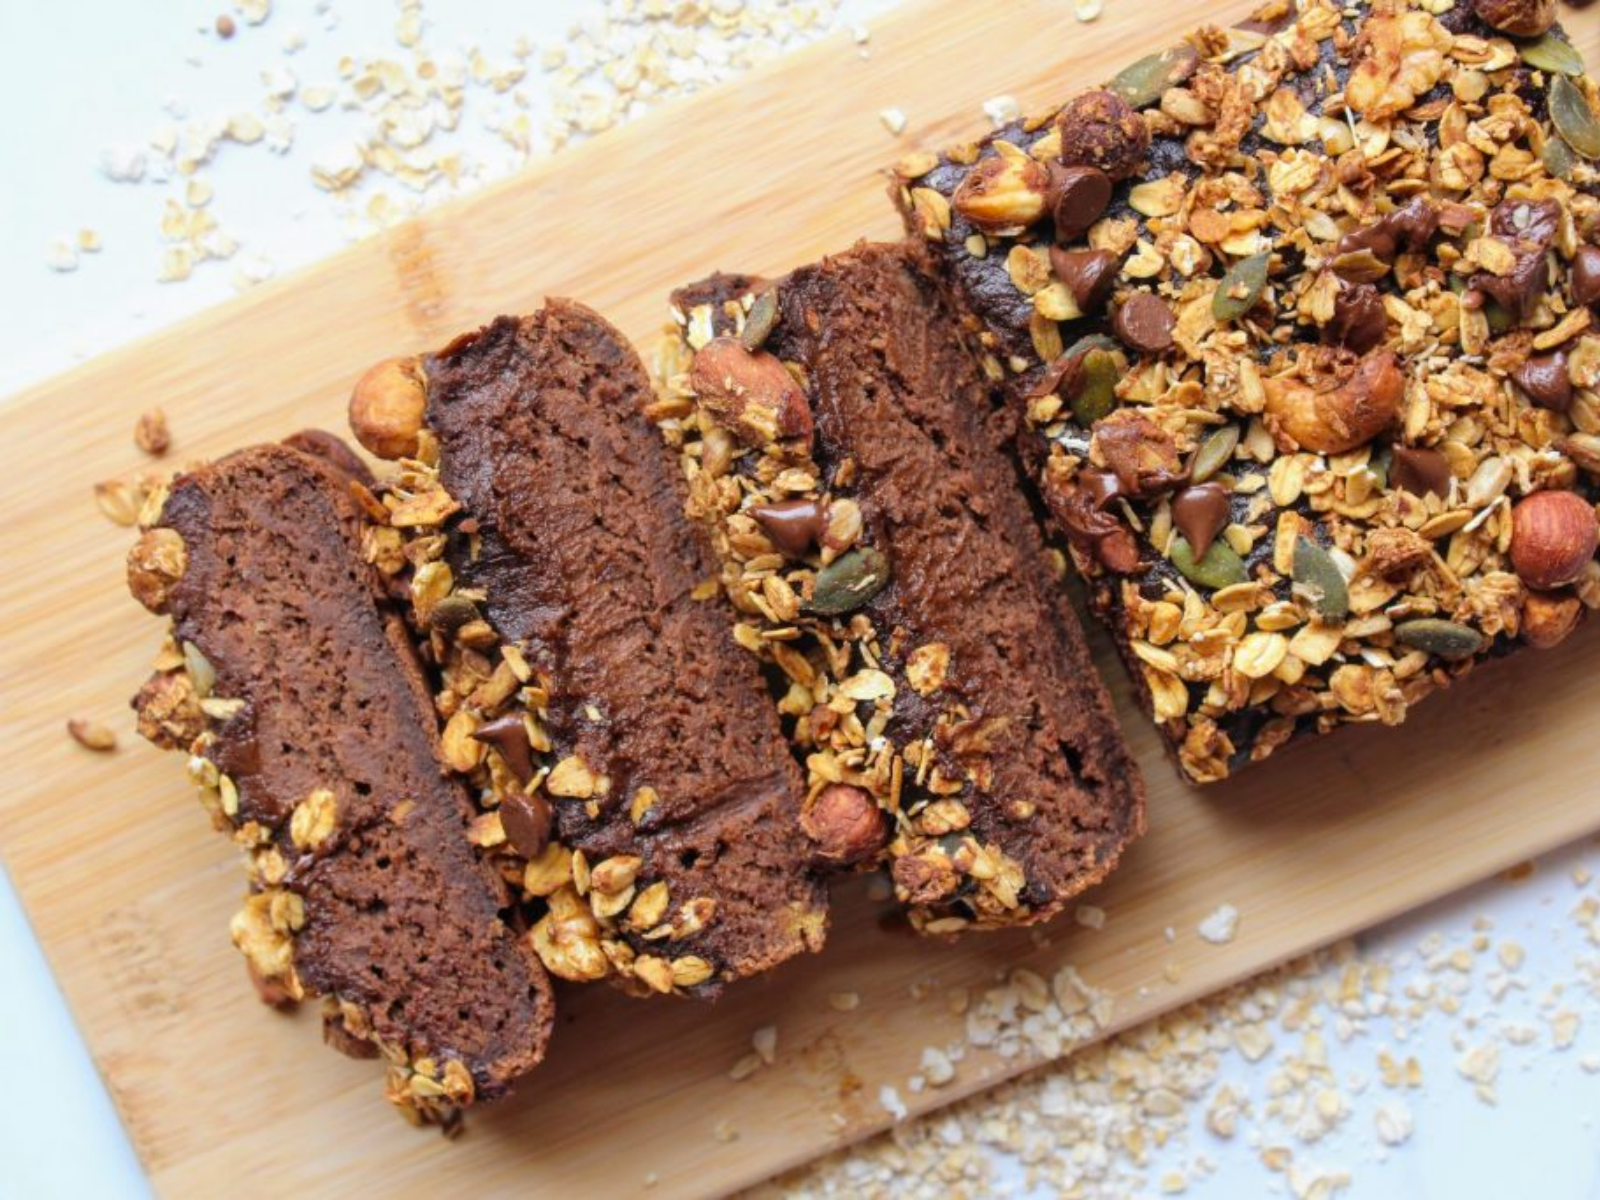 vegan dark chocolate loaf with granola topping